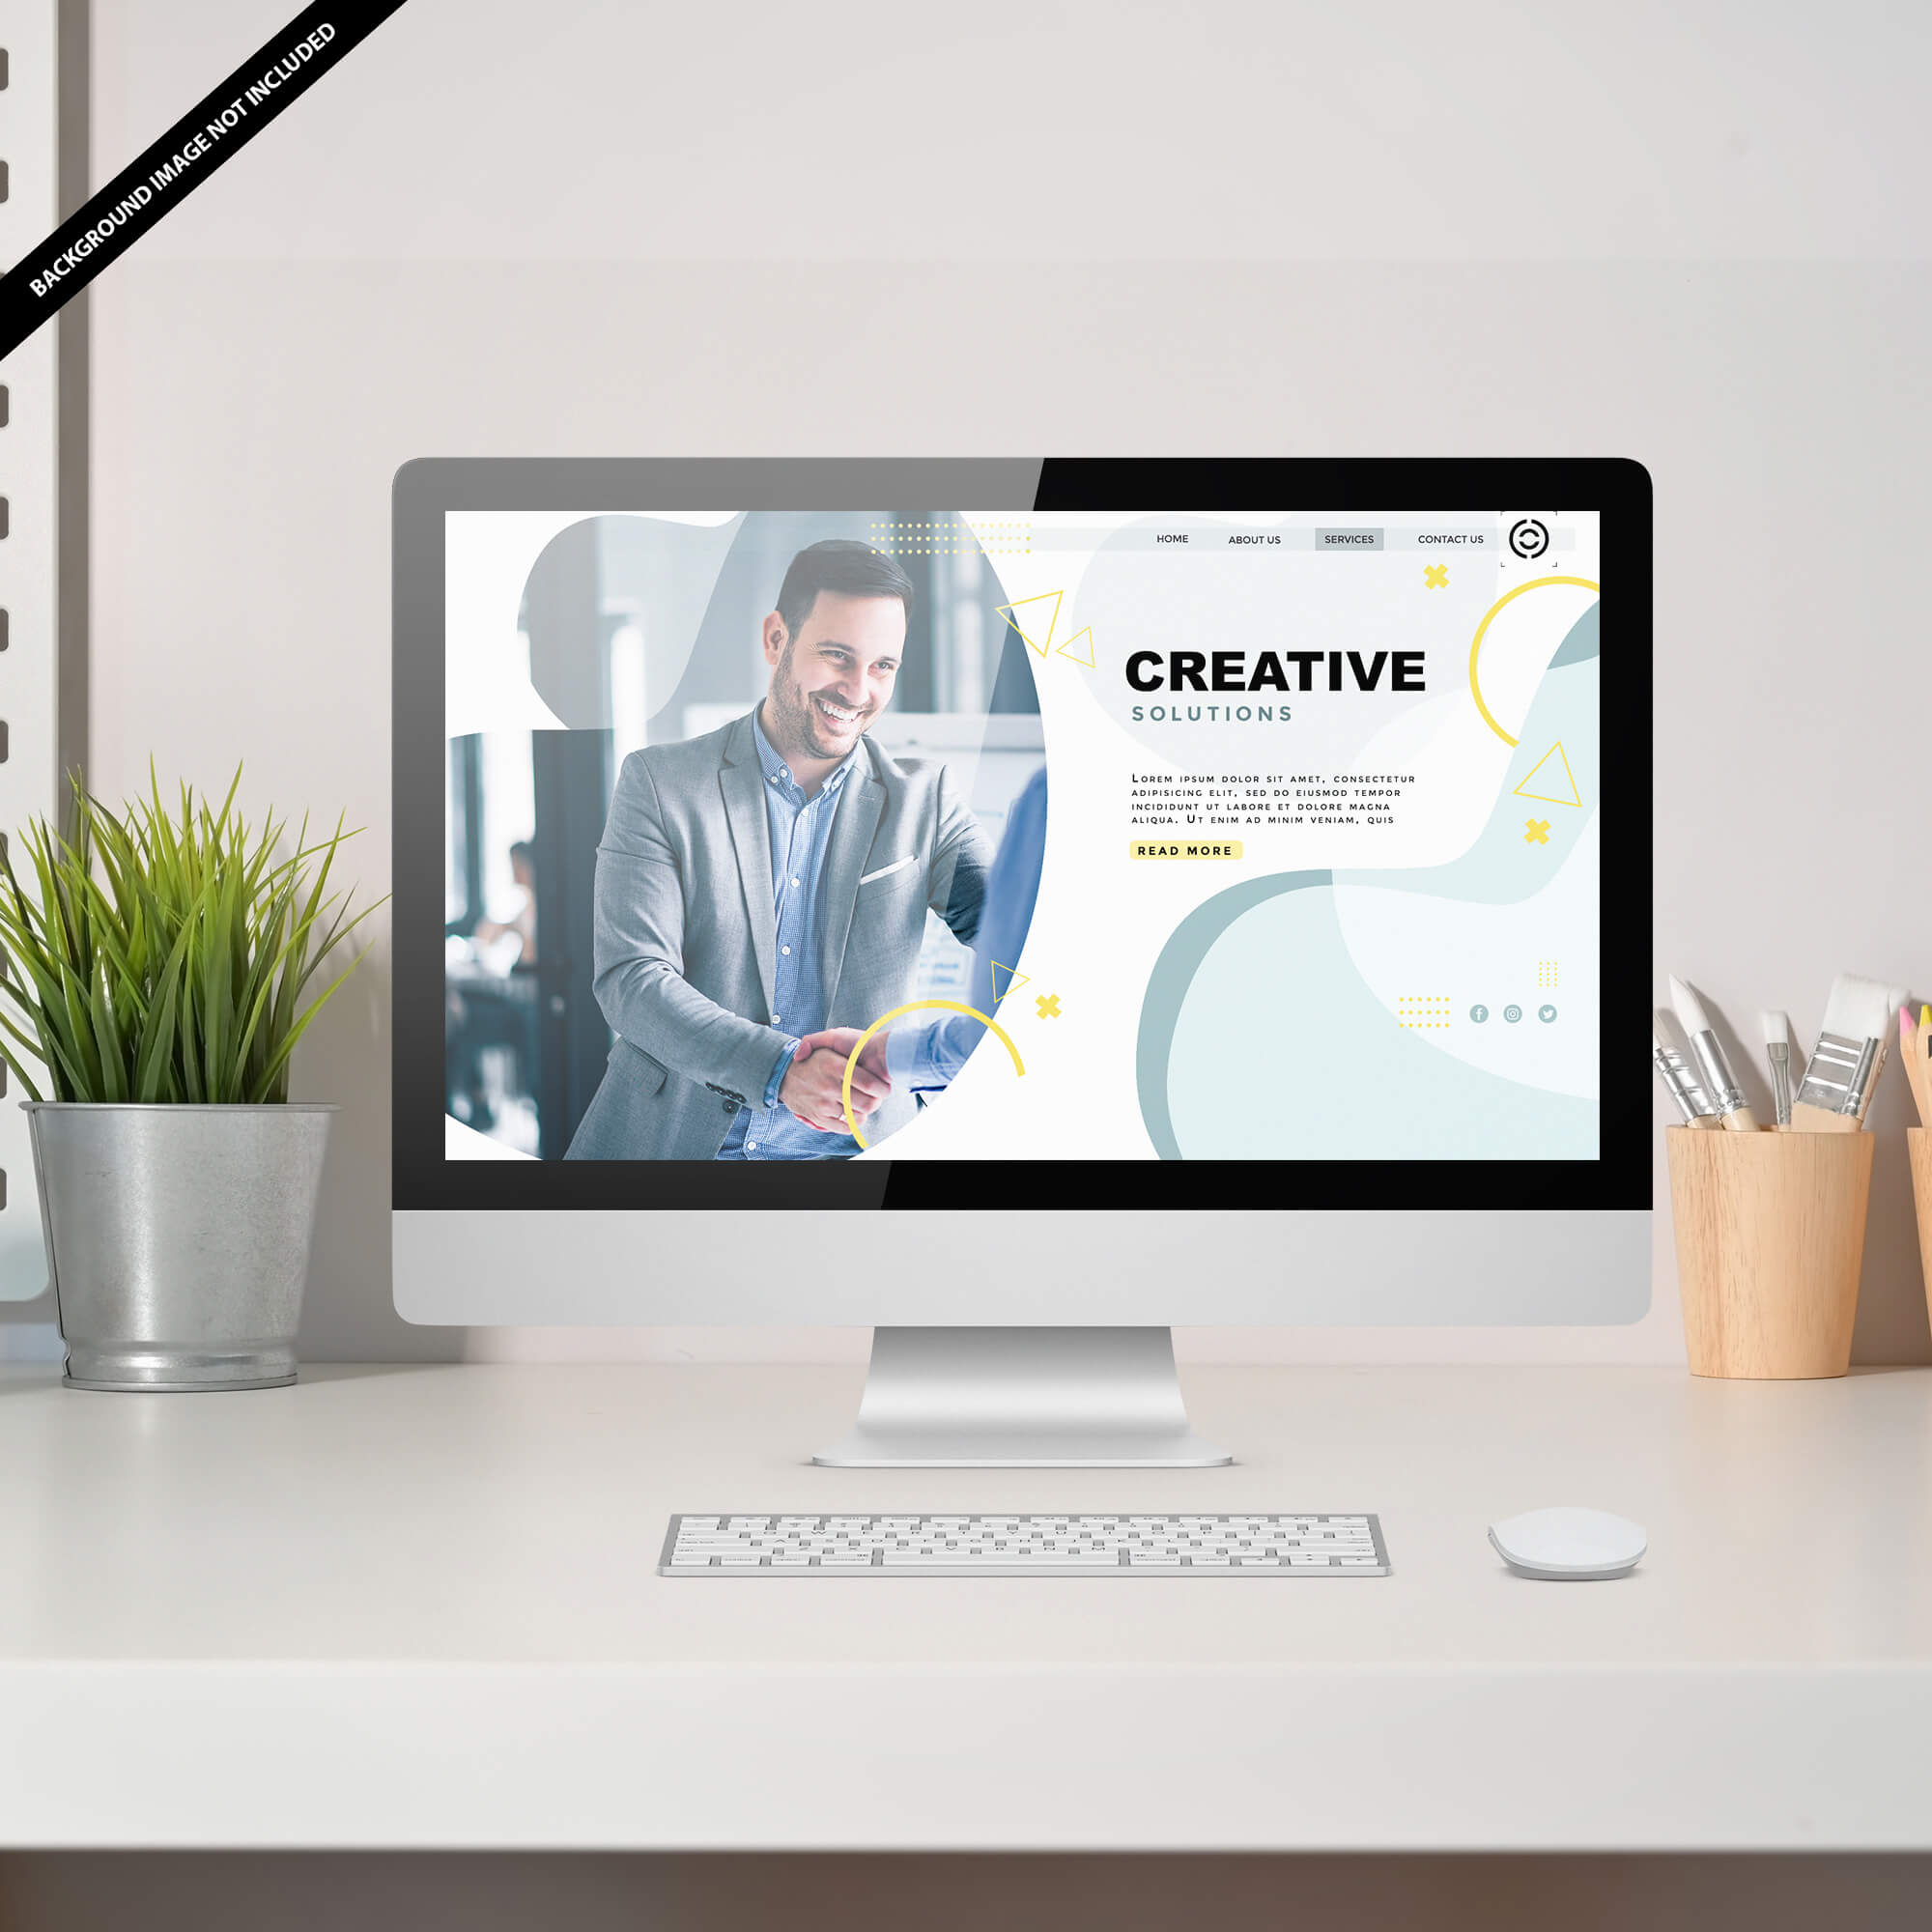 Free Website Display Mockup PSD Template